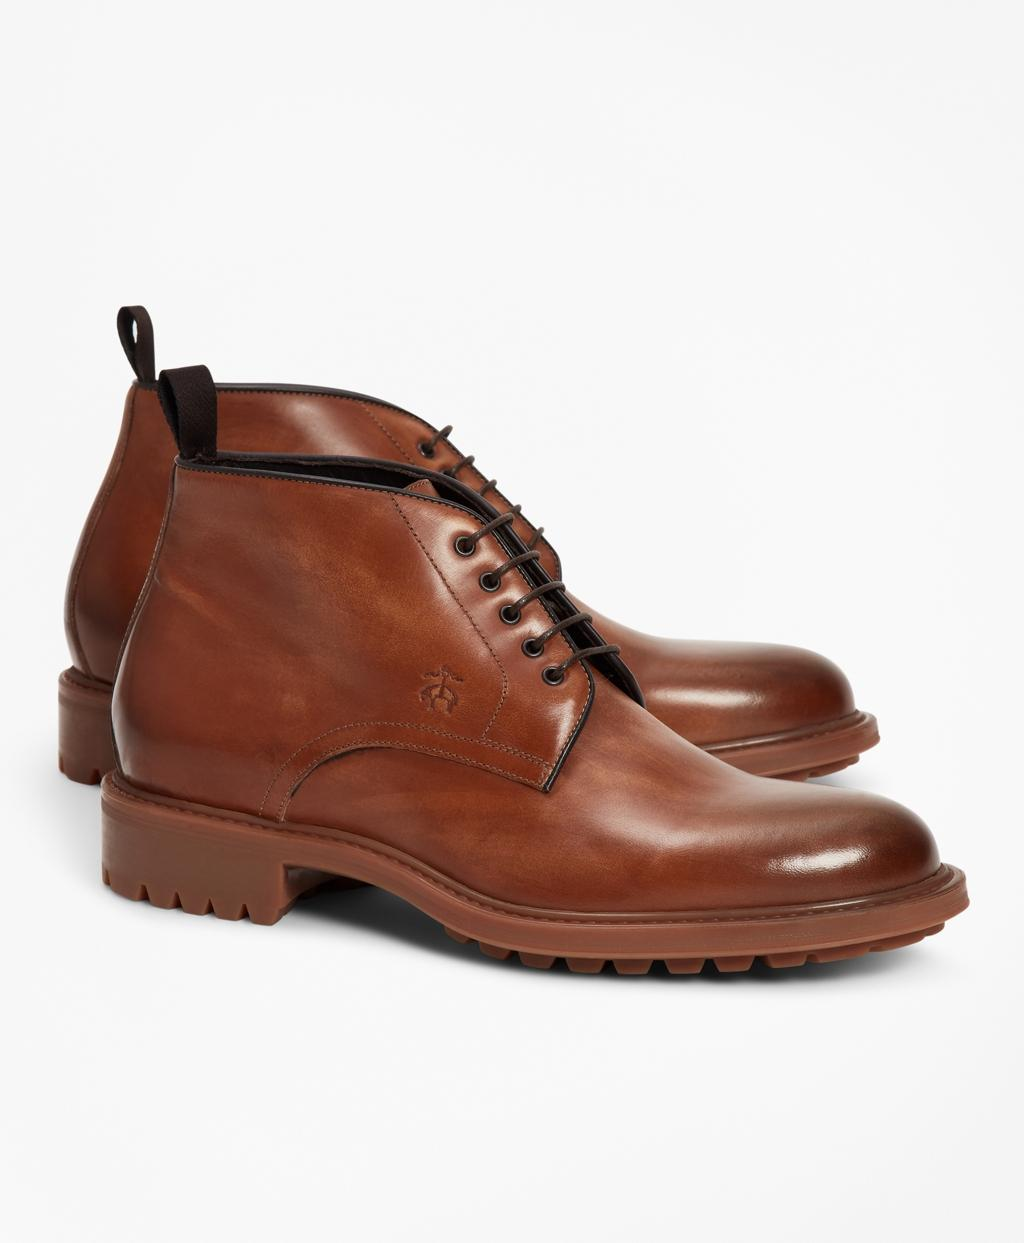 a579d71b50a Brooks Brothers. Men s Brown 1818 Footwear Lug-sole Leather Chukka Boots